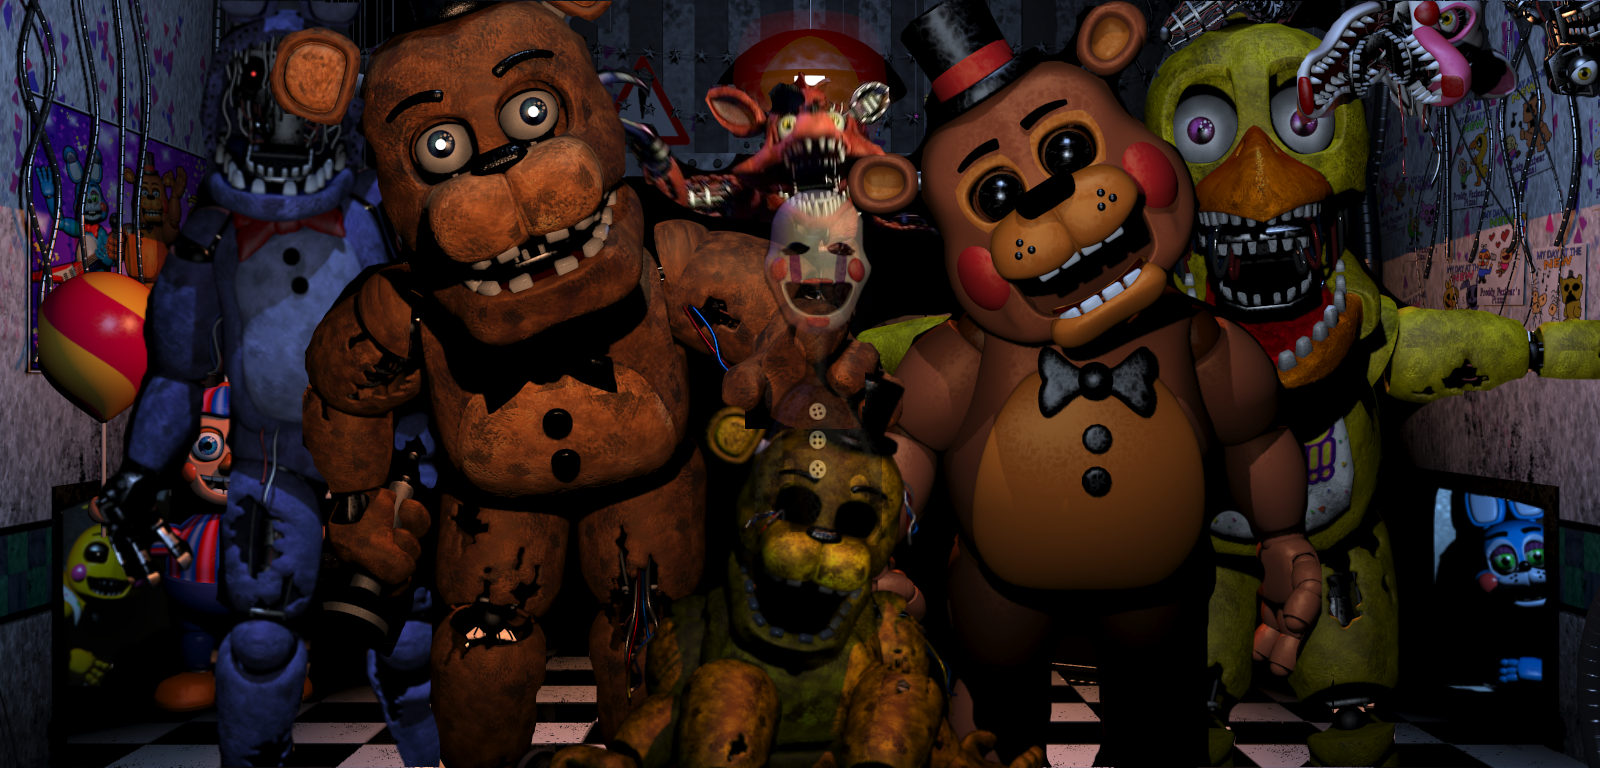 Five nights at freddys 2 all animatronicswallpaper by sander4820 on